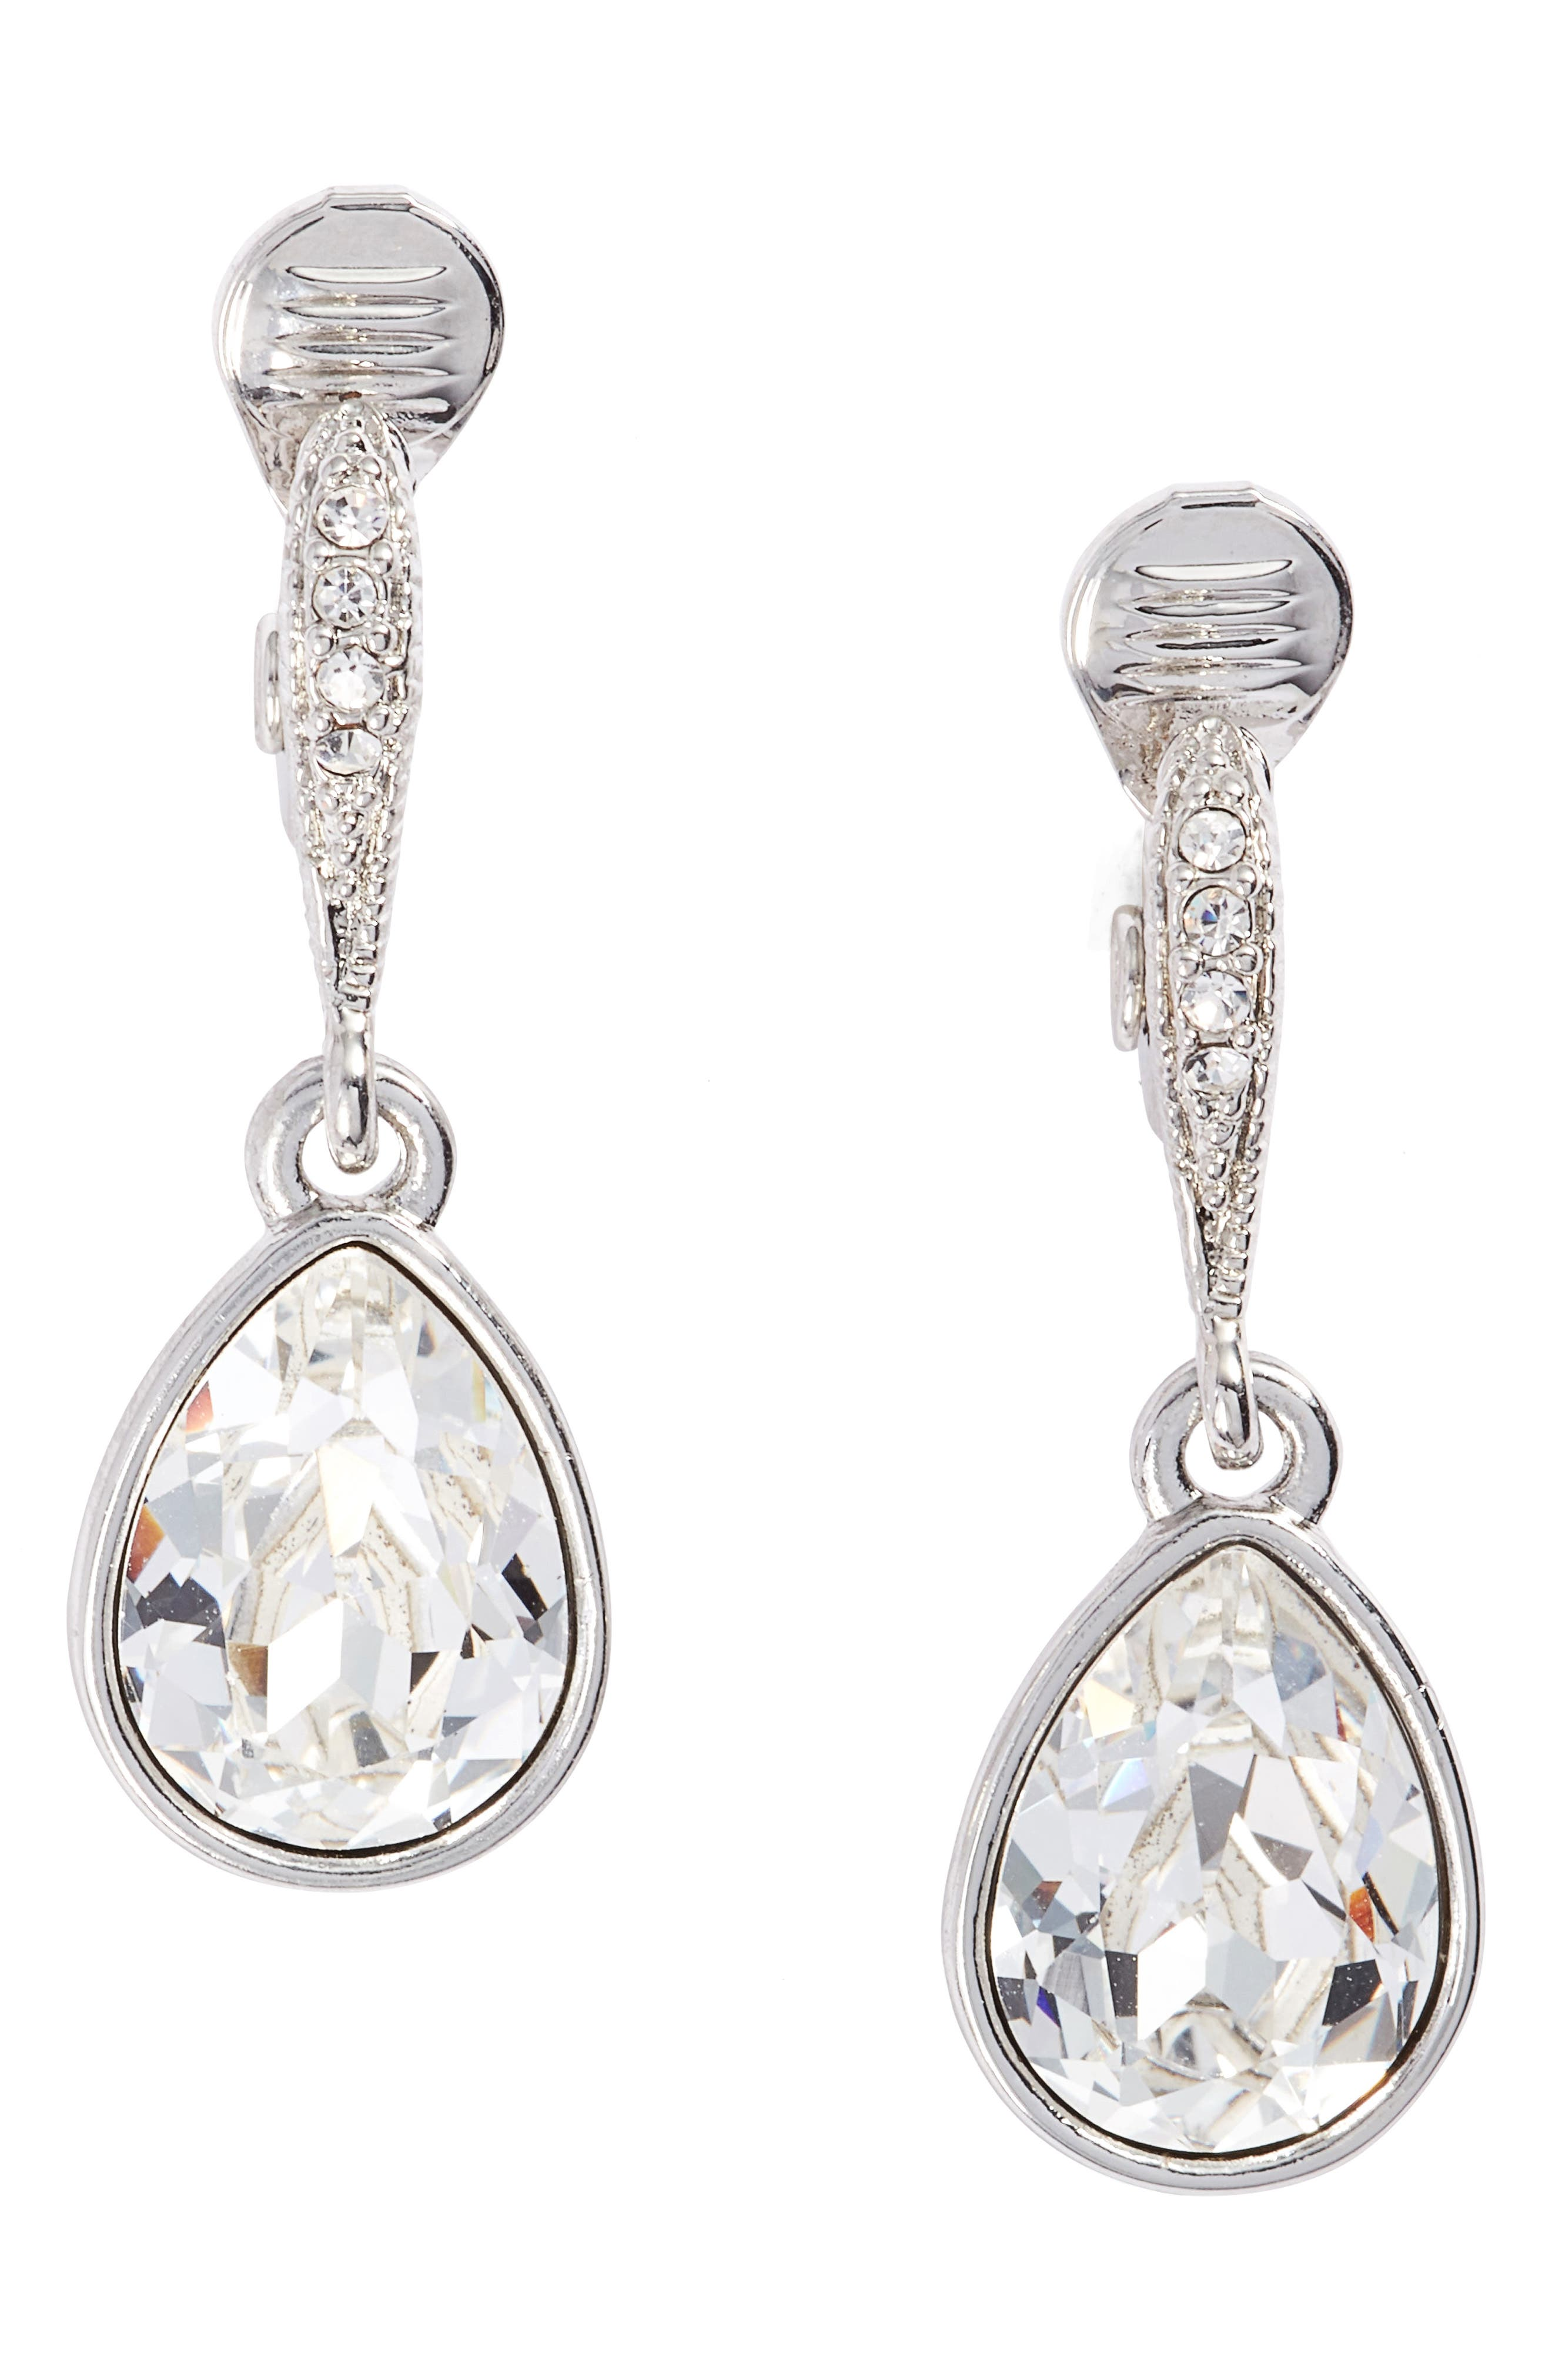 Givenchy Small Drop Clip Earrings